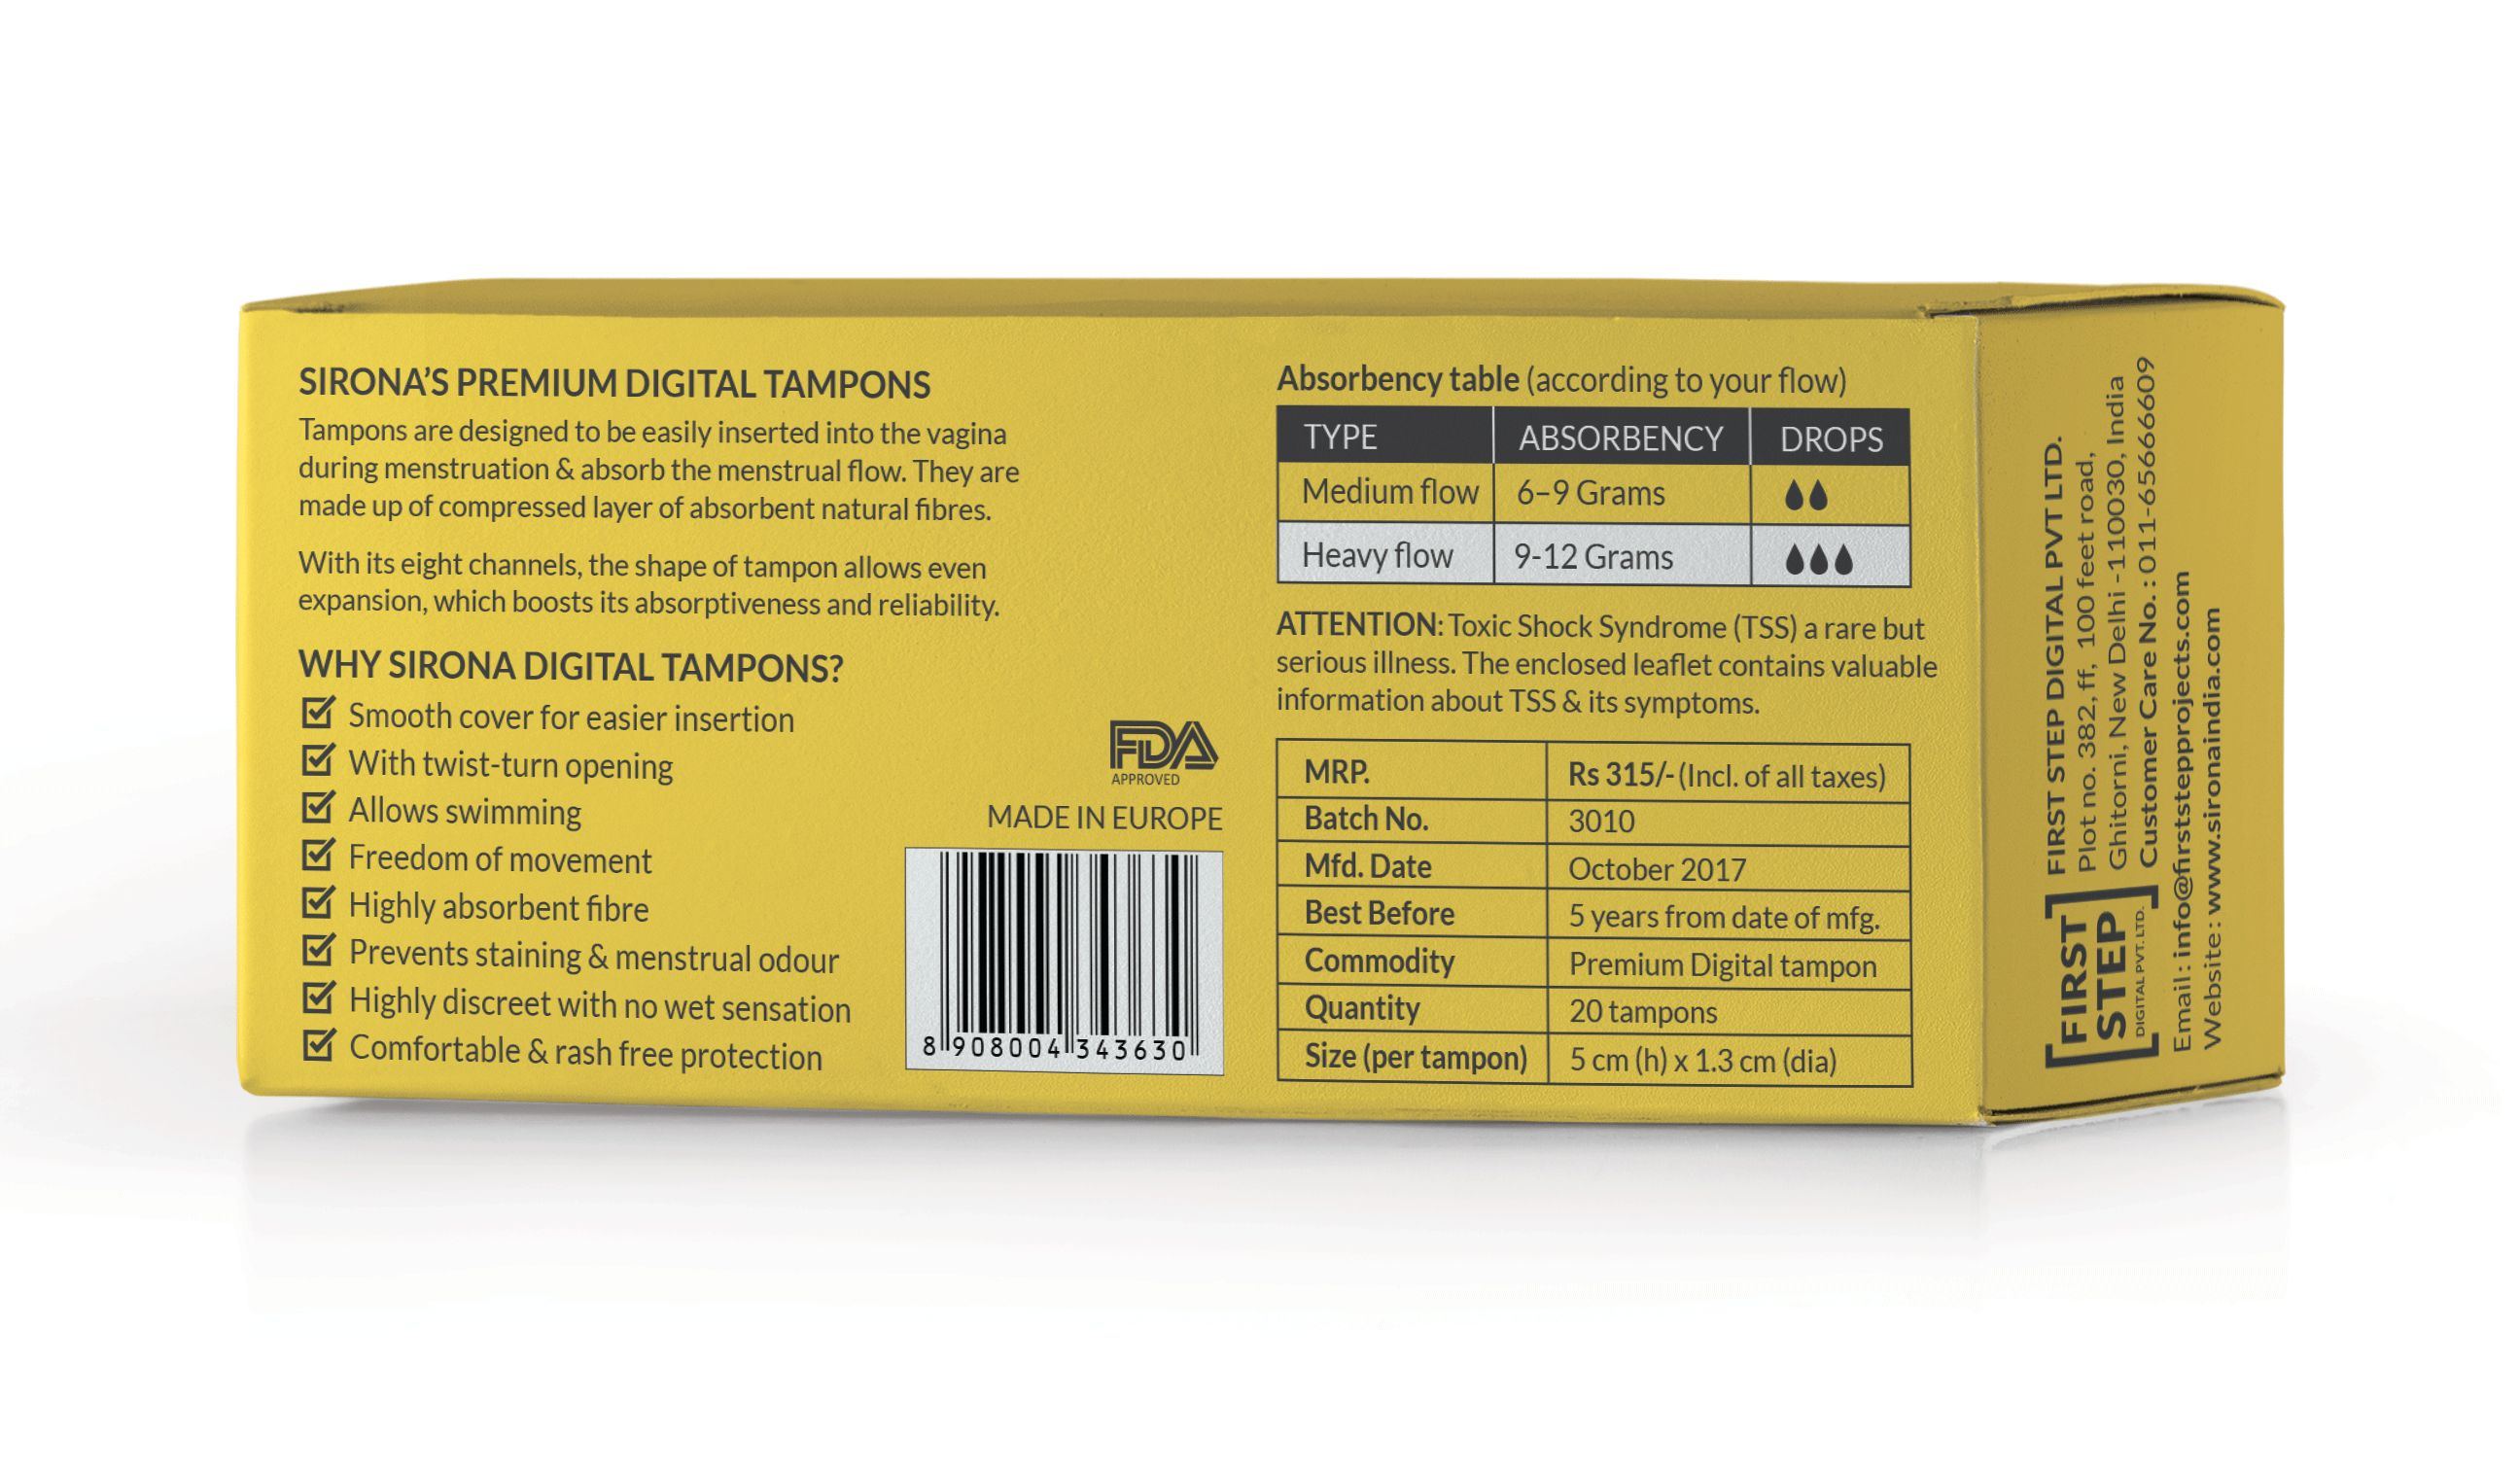 Sirona FDA Approved Premium Digital Tampon For Heavy Flow - 20 Tampon-375666